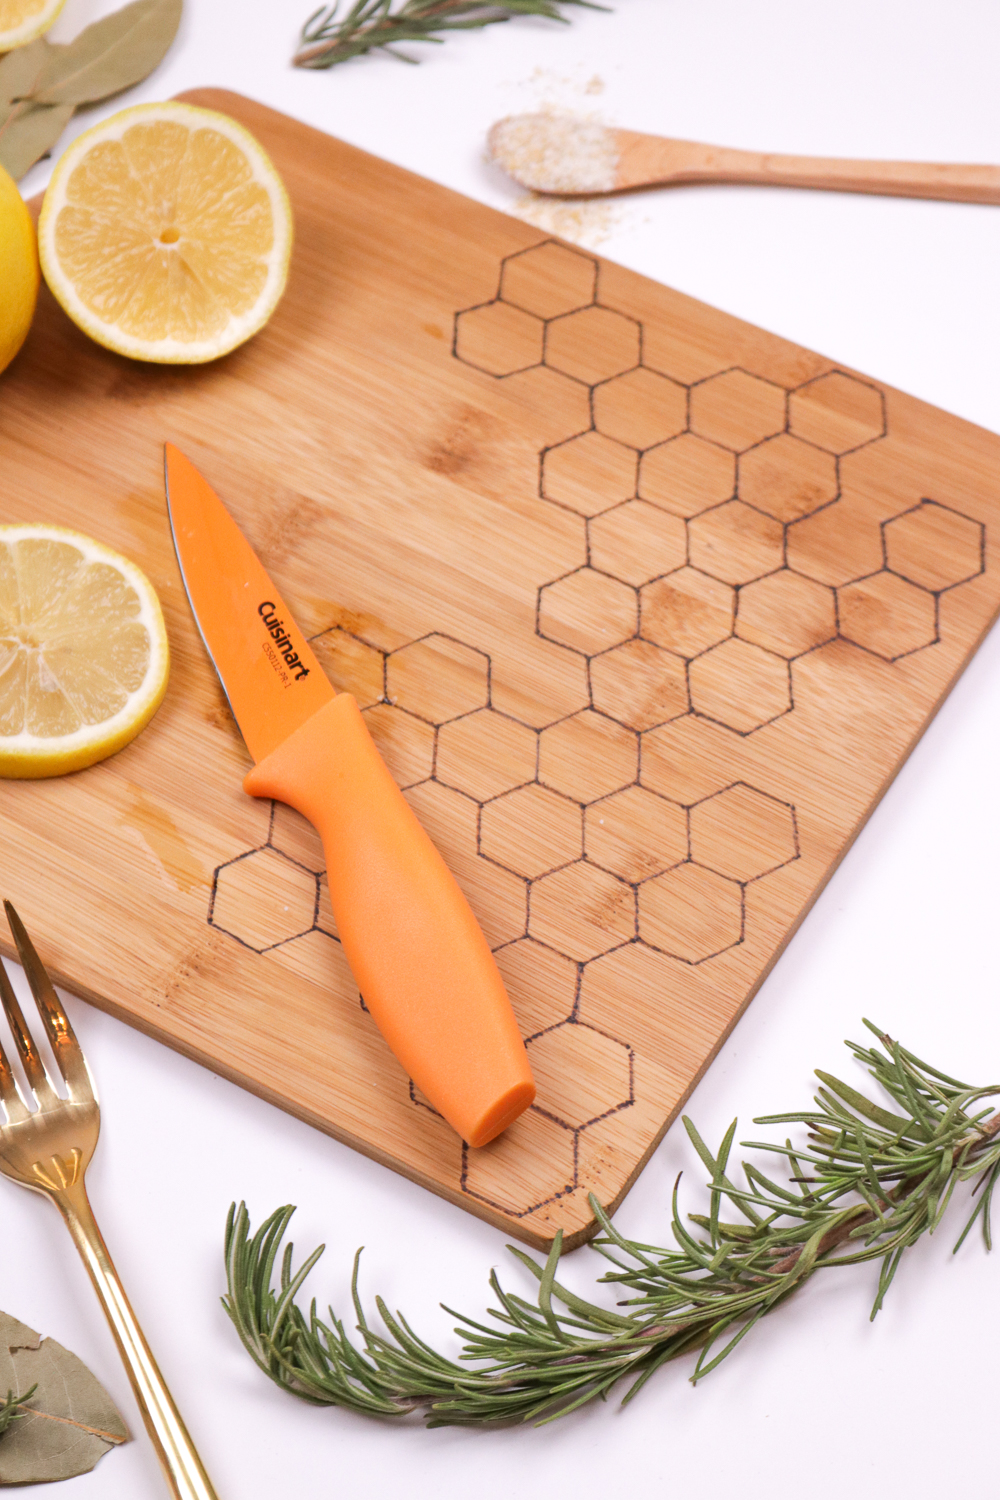 DIY Honeycomb Wood Burned Cutting Board | Club Crafted